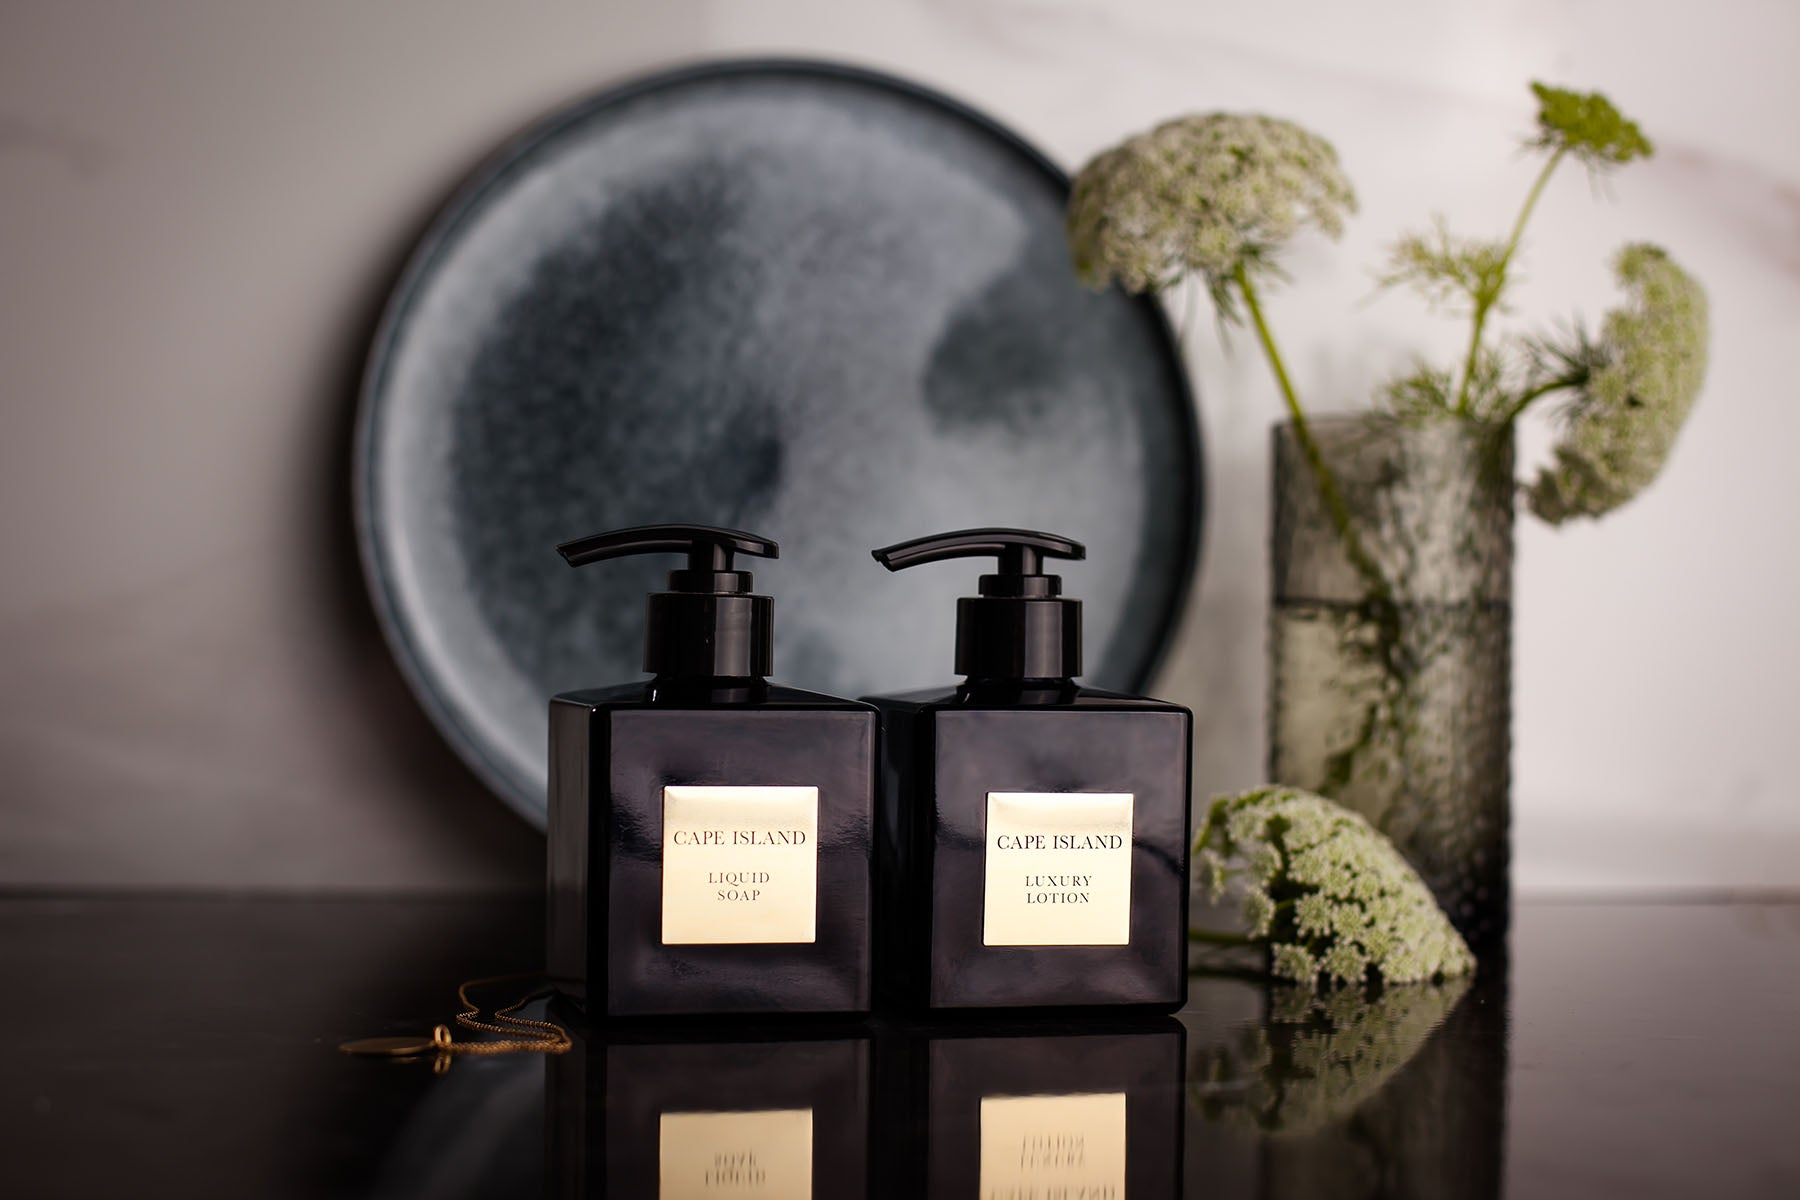 The Cape Island Black Gold fragrance diffuser. Cape Island luxury candles, soap products and home fragrances are available at Sarza home goods and furniture store in Rye New York.